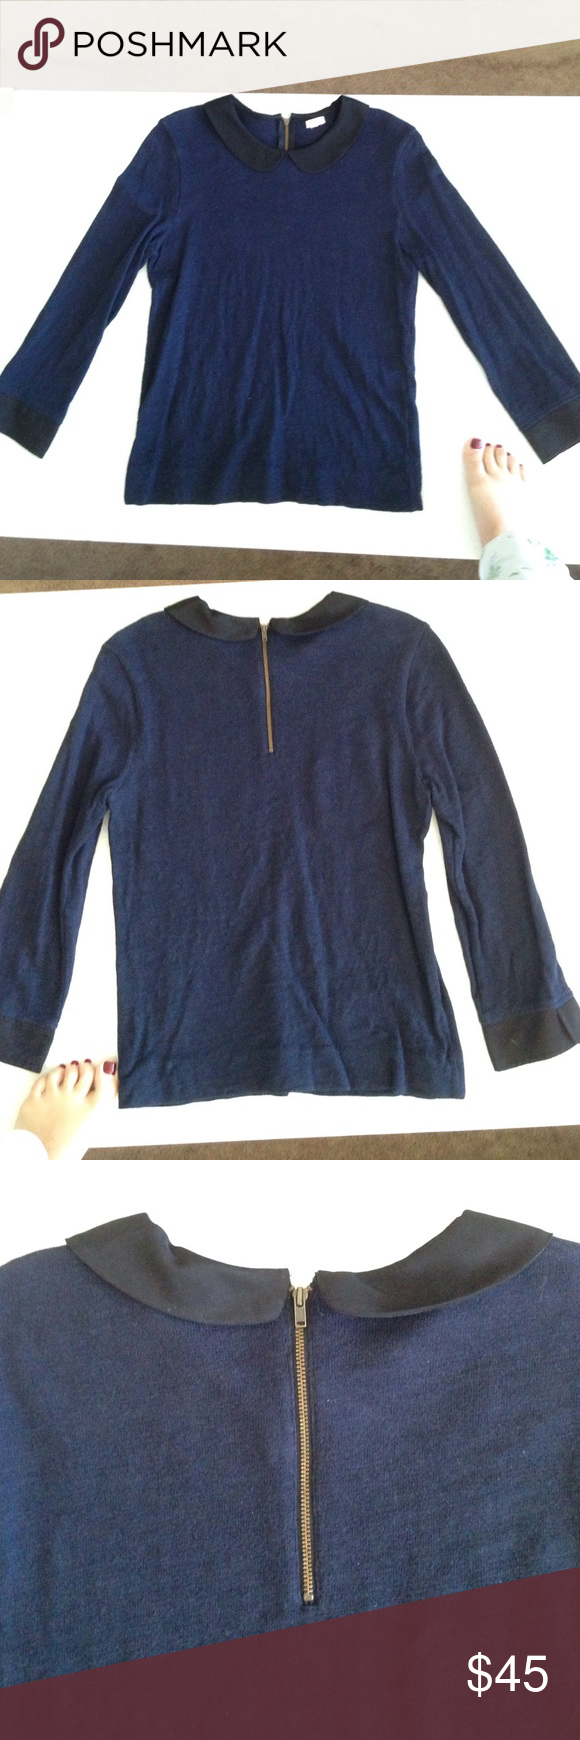 J Crew Peter Pan Collared Shirt in Navy & Black Love this Peterson Pan Collared Shirt!! It's in perfect condition and has a great zipper on the back!!  If you live in Chicago you could do a pick up for a lower price. Please ask any questions... J. Crew Tops Blouses